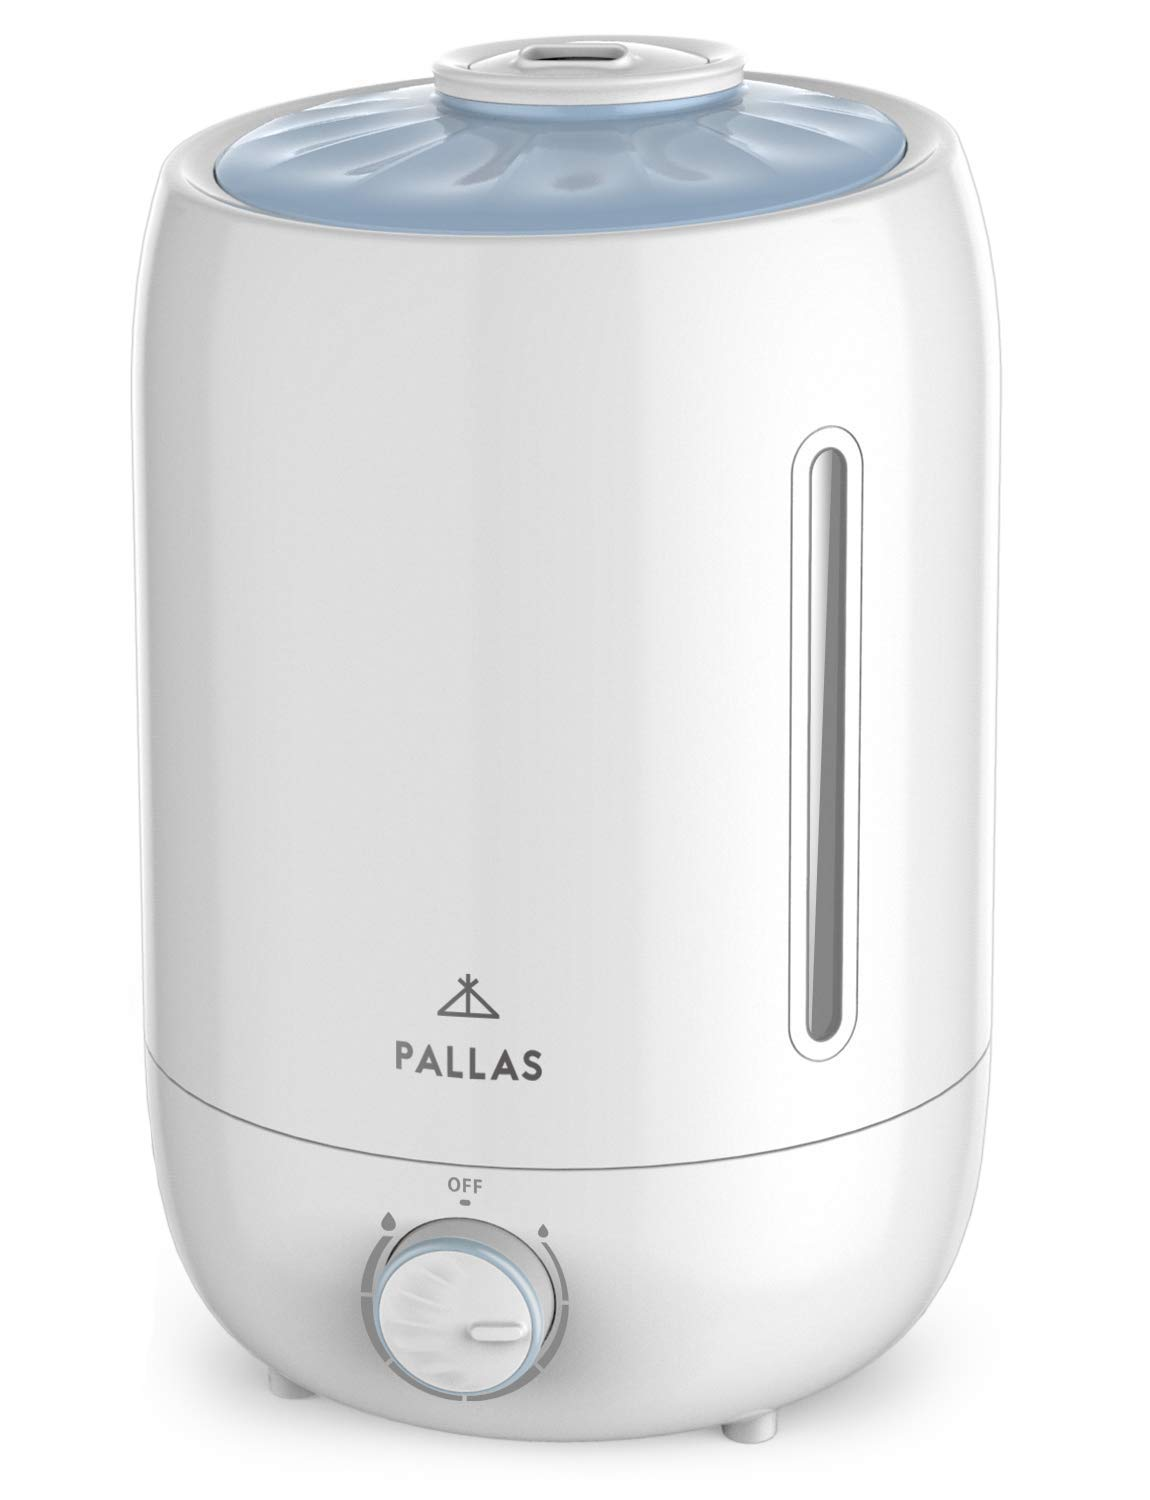 【Upgraded Model】Pallas Humidifier, Ultrasonic Cool Mist Humidifiers with 5L Water tank for Bedroom, Baby, Home, Adjustable Mist Knob 360 Rotatable Mist Outlet, Automatic Shut-Off - Lasts Up to 150hrs